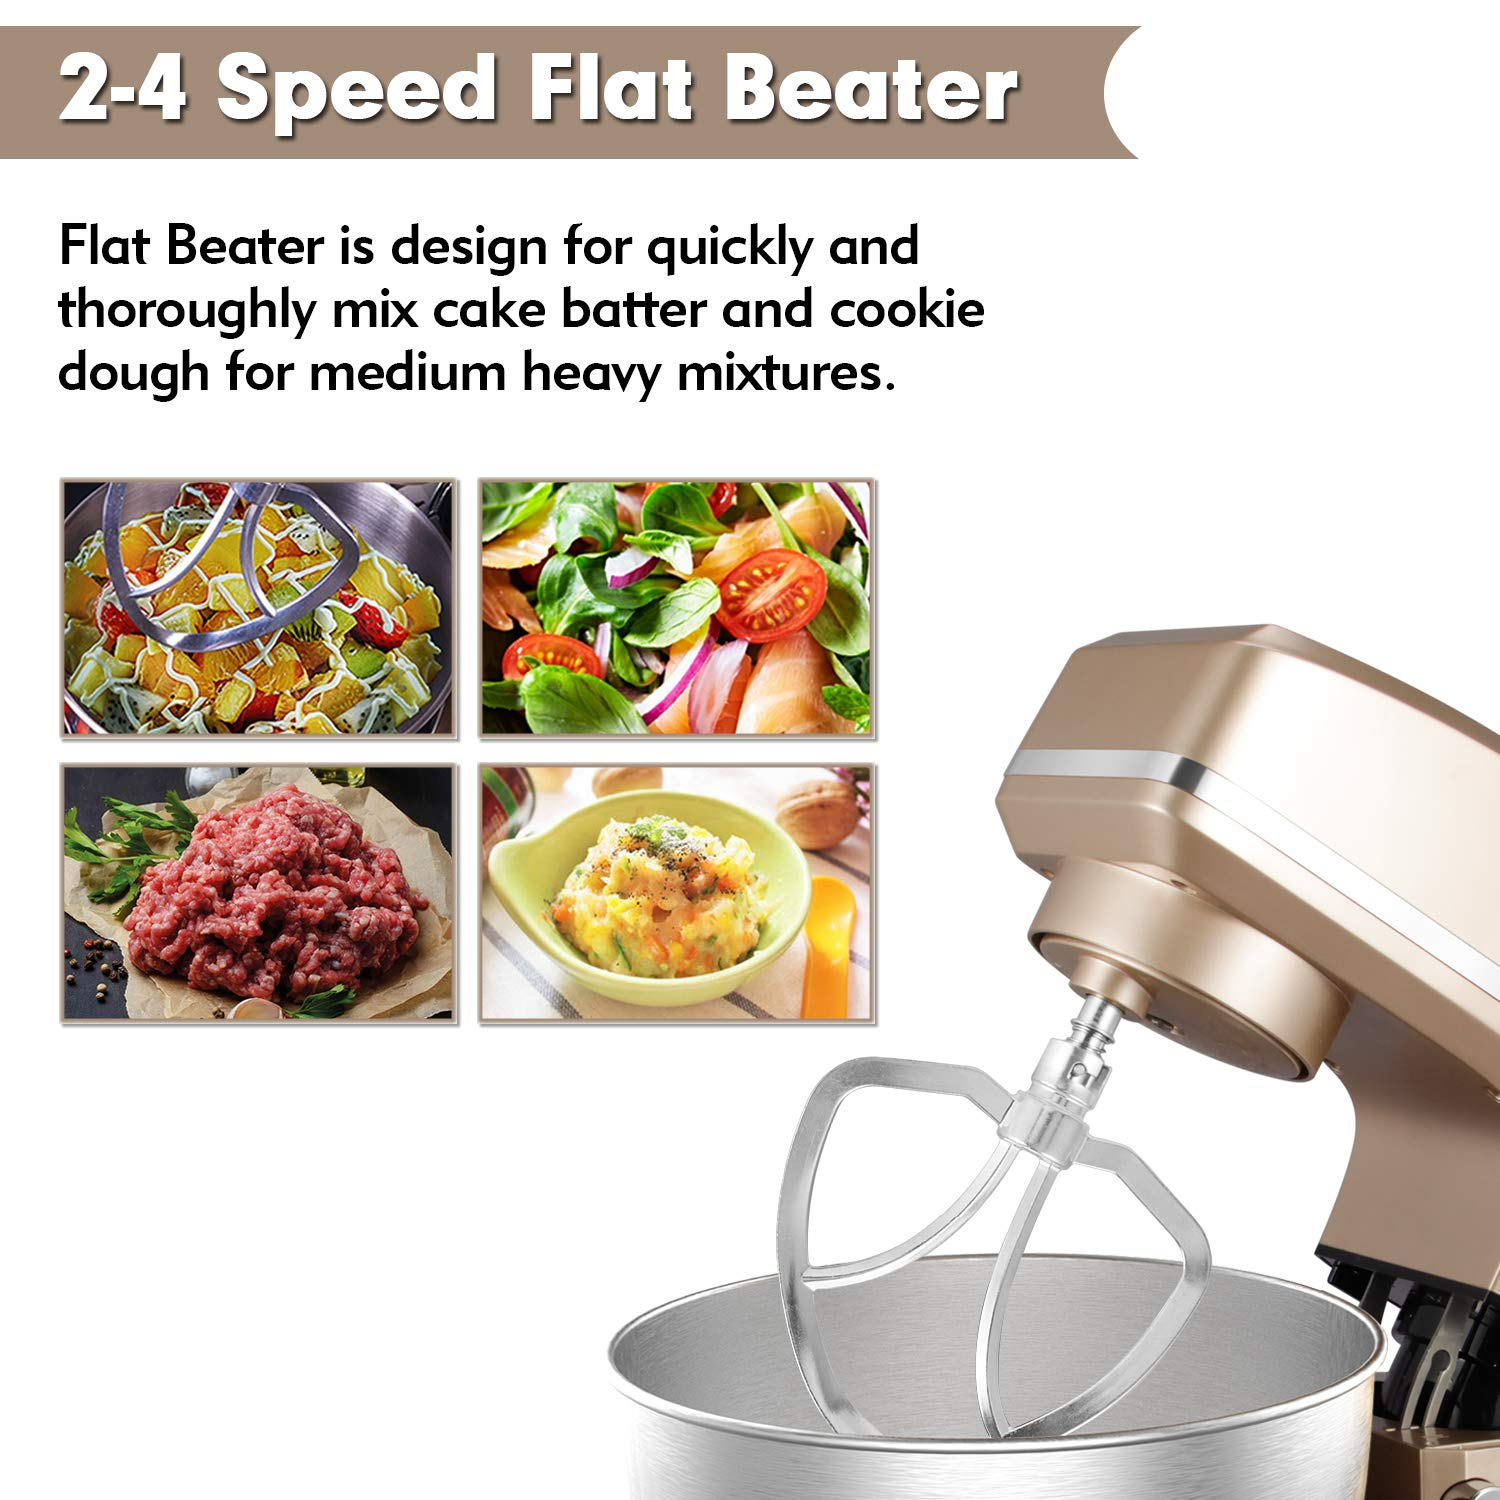 Stand Mixer Sincalong 8.5QT 6 Speed Control Electric Stand Mixer with Stainless Steel Mixing Bowl and 3 Attachments for Mix Blend Whip and Knead